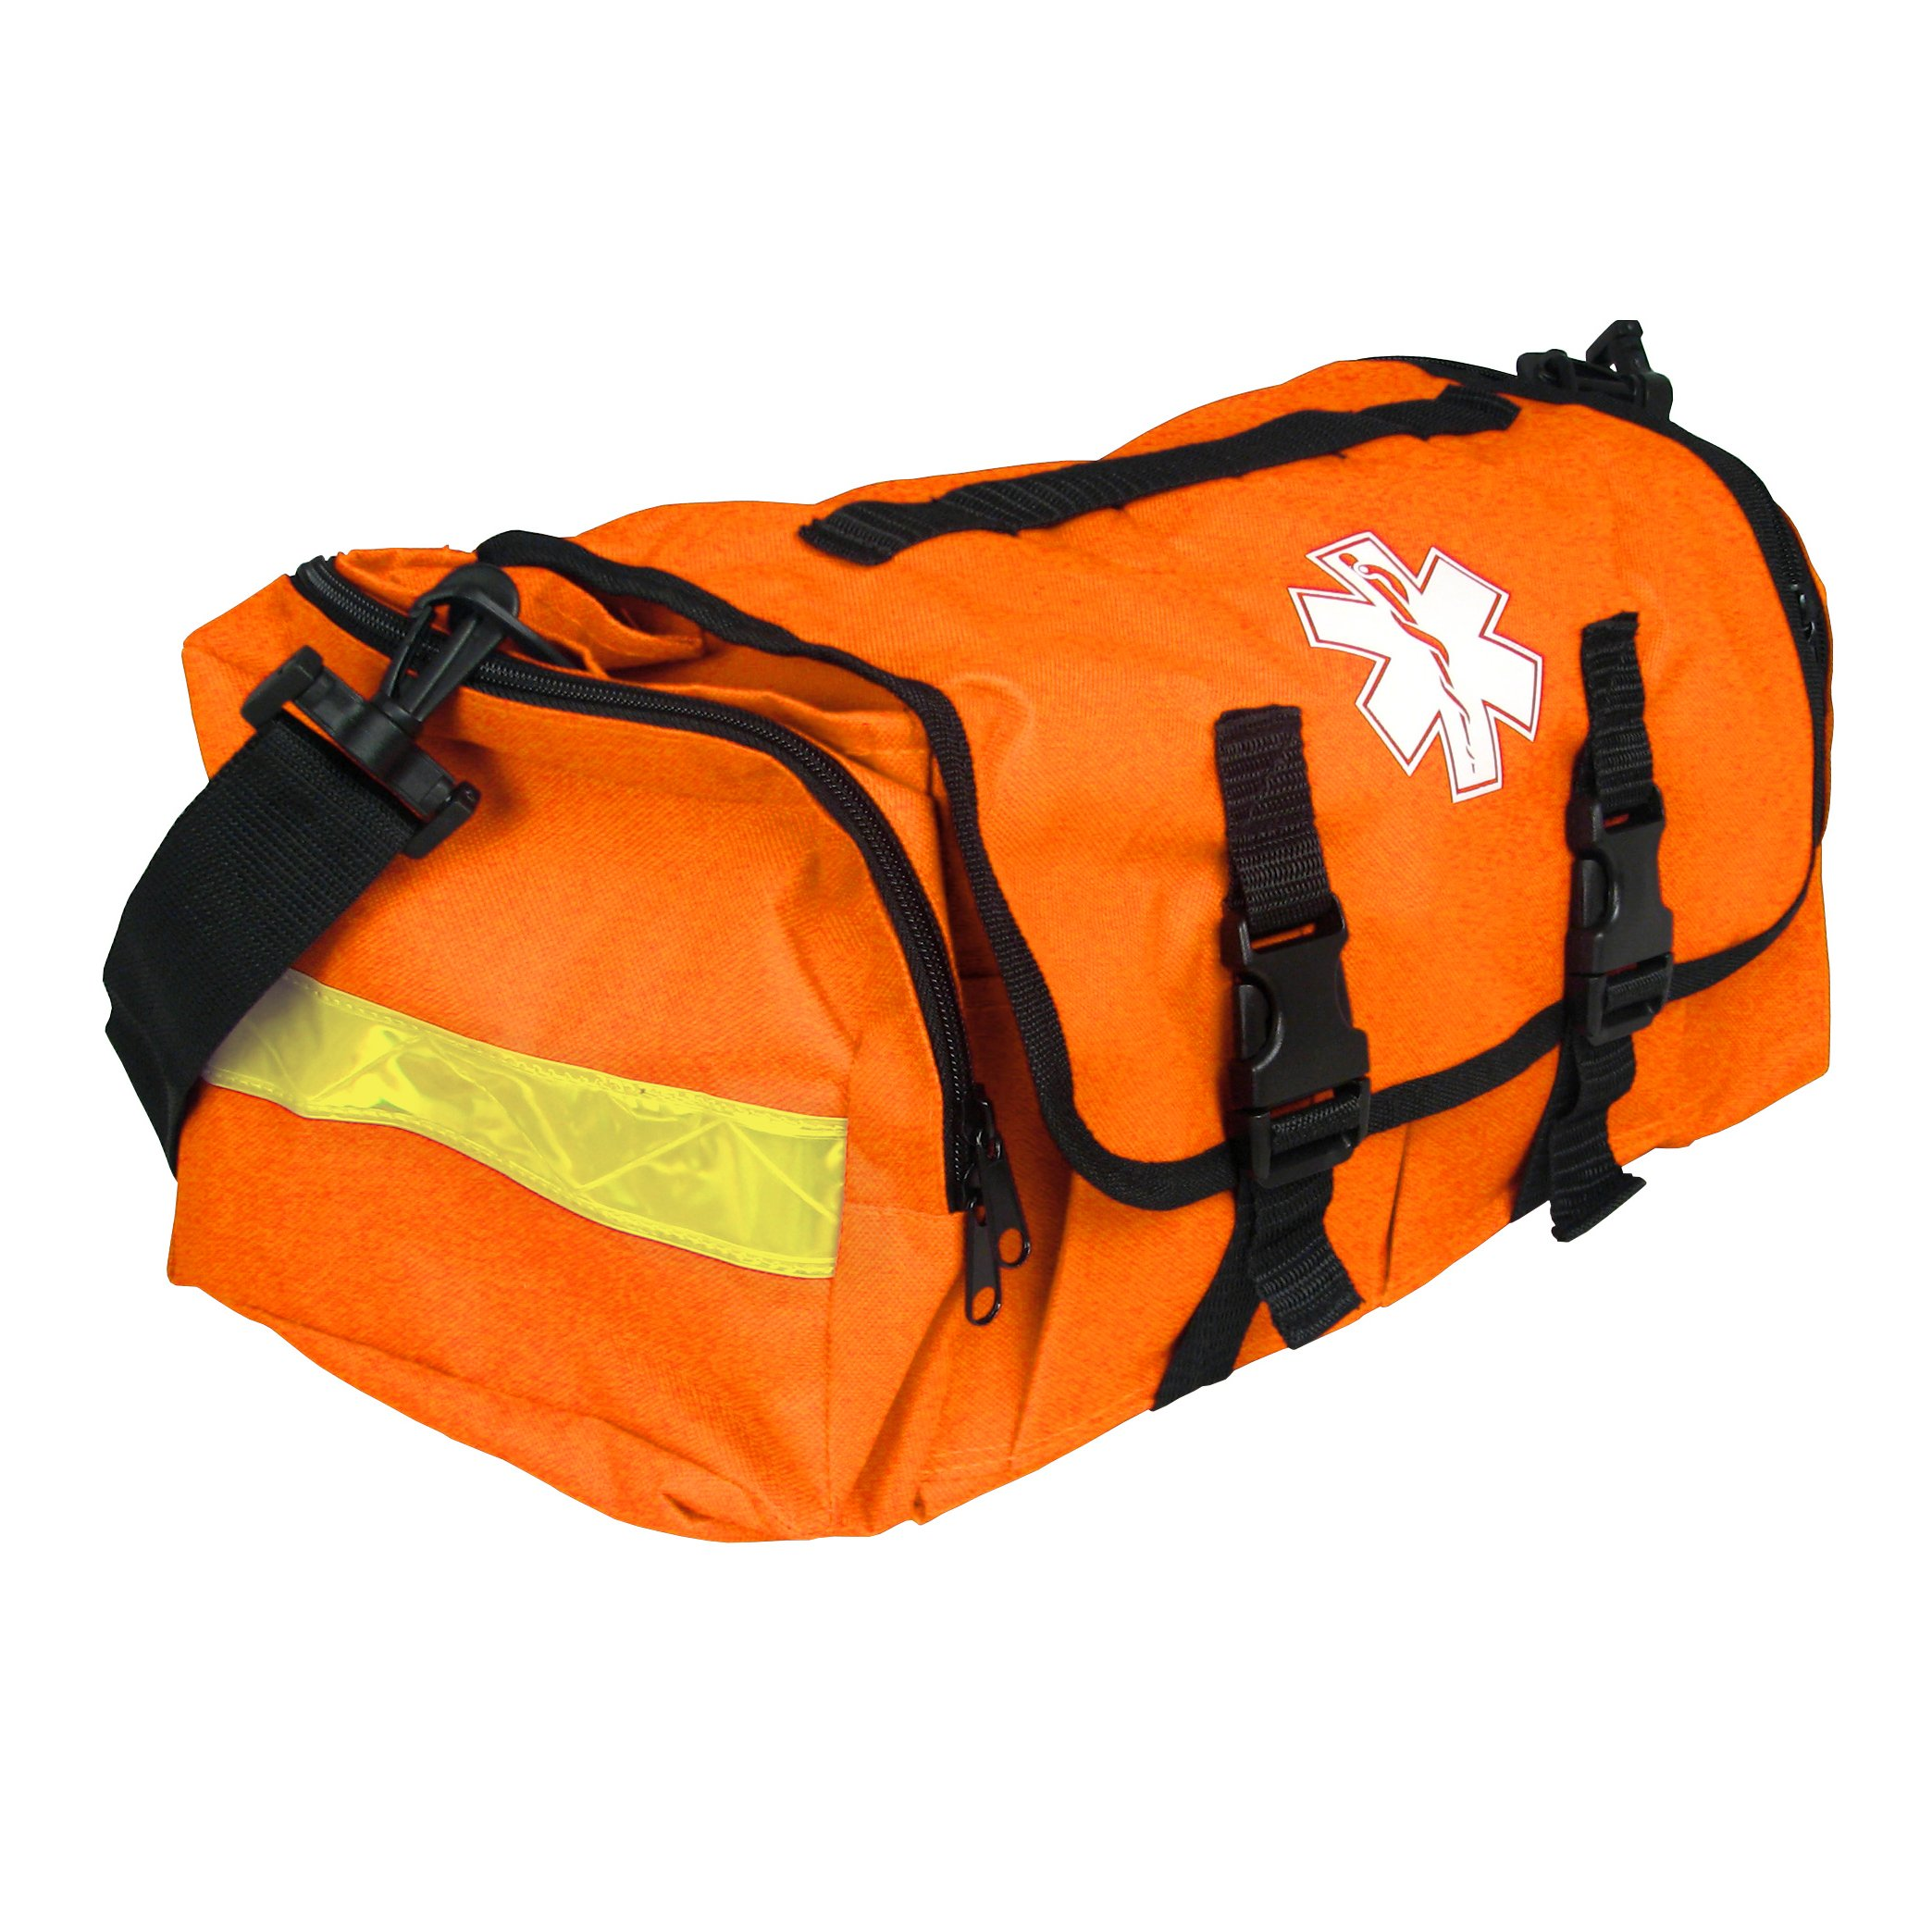 Empty First Responder On Call Trauma Kit Bag W/ Reflectors Orange